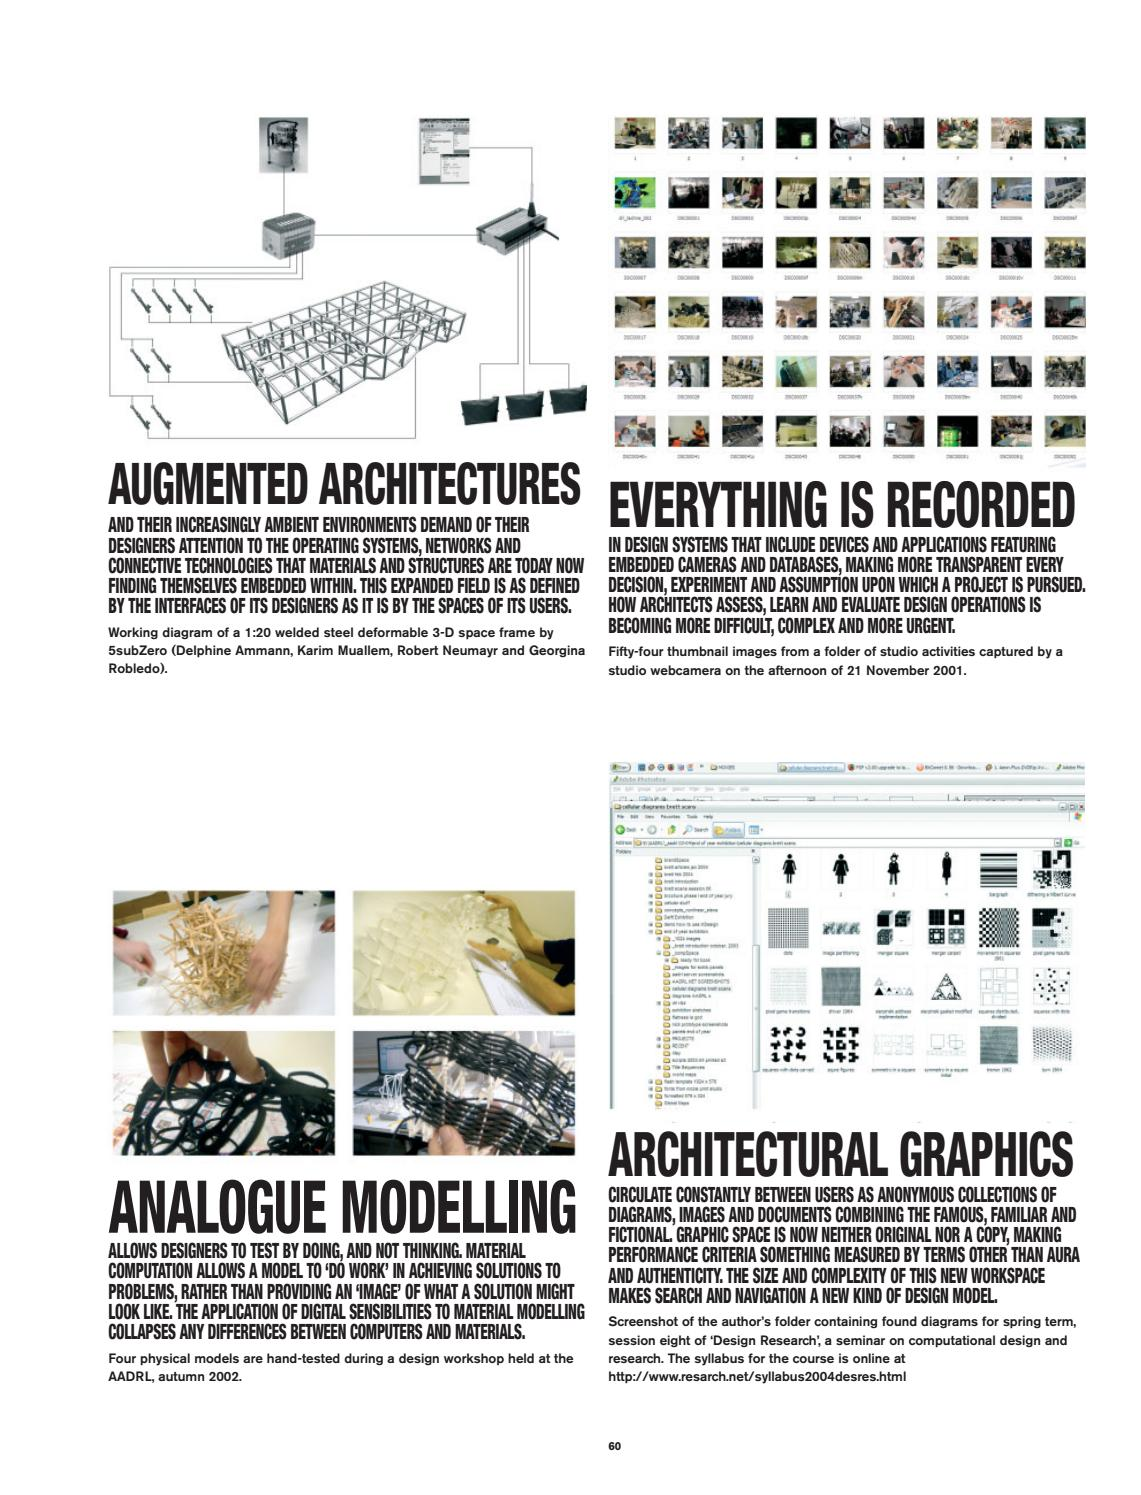 Collective Intelligence In Design By Aung Myat Kyaw Issuu